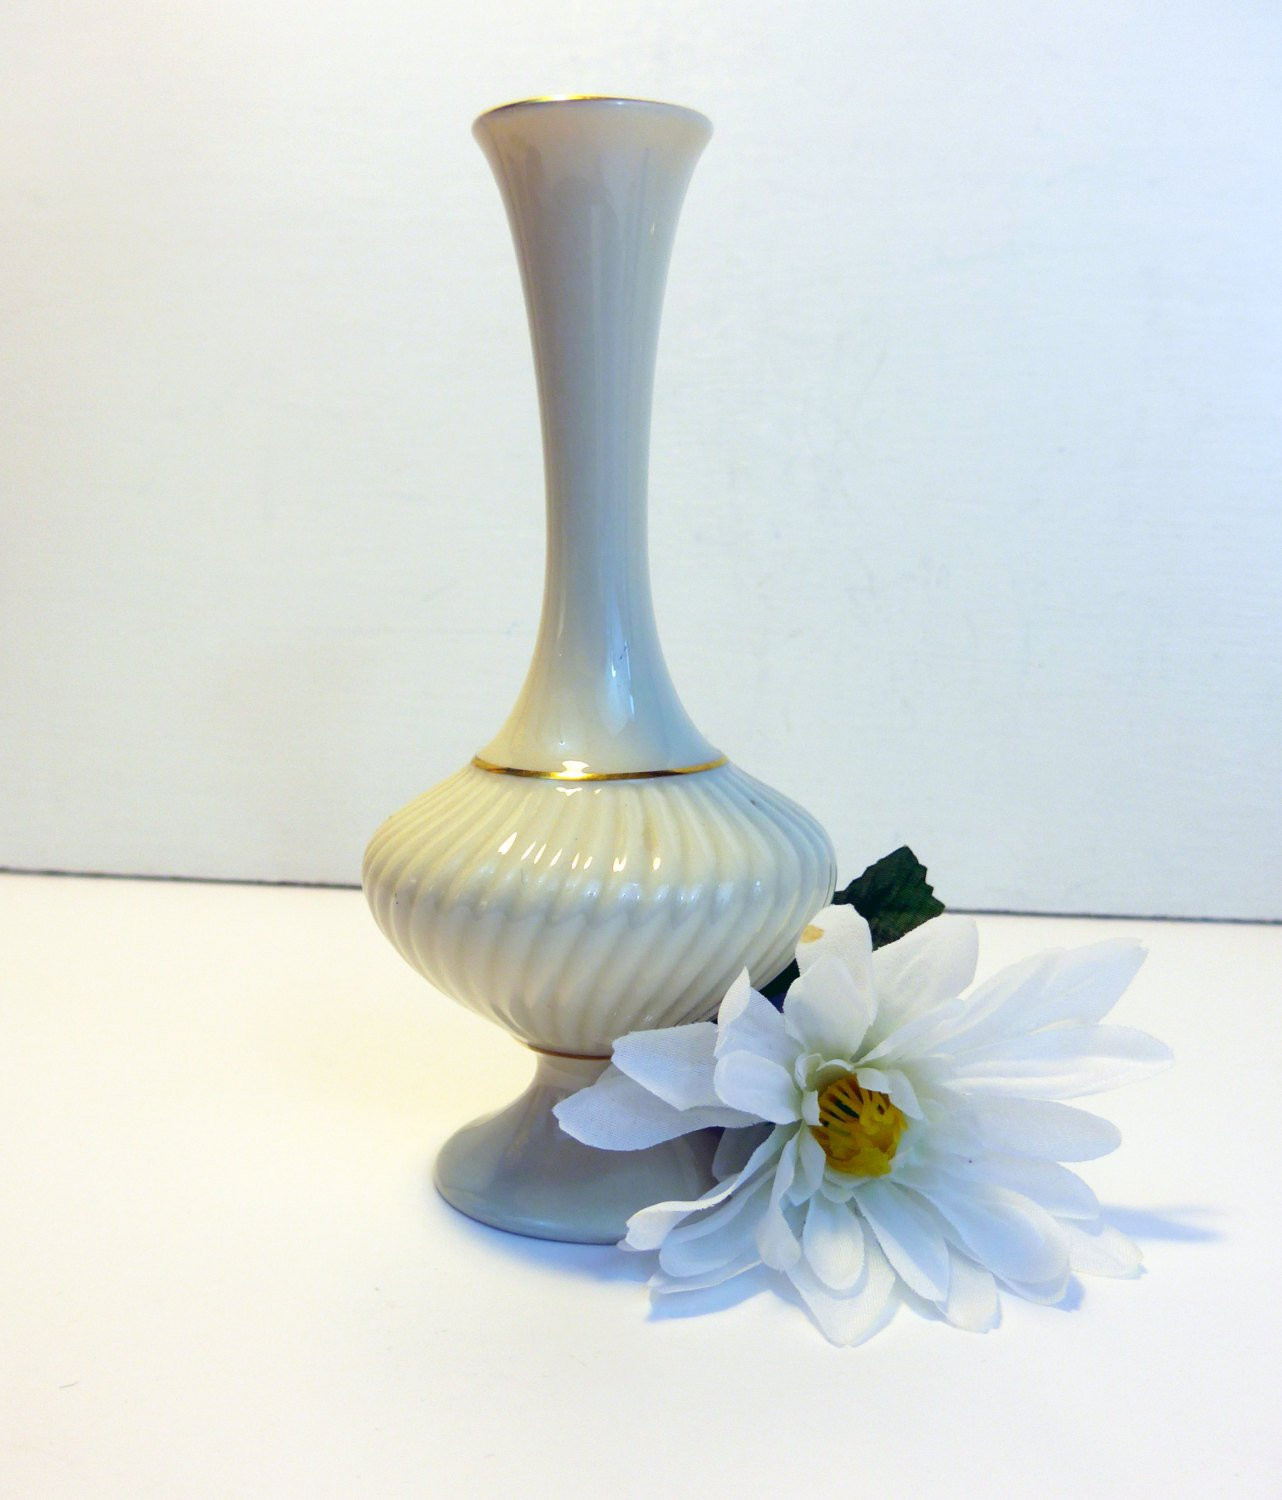 lenox bud vases set of 3 of vintage lenox white cream vase w gold trim giftware swirl within vintage lenox white cream vase w gold trim giftware swirl ribbed vase savoy lenox china bud vase traditional classic home decor